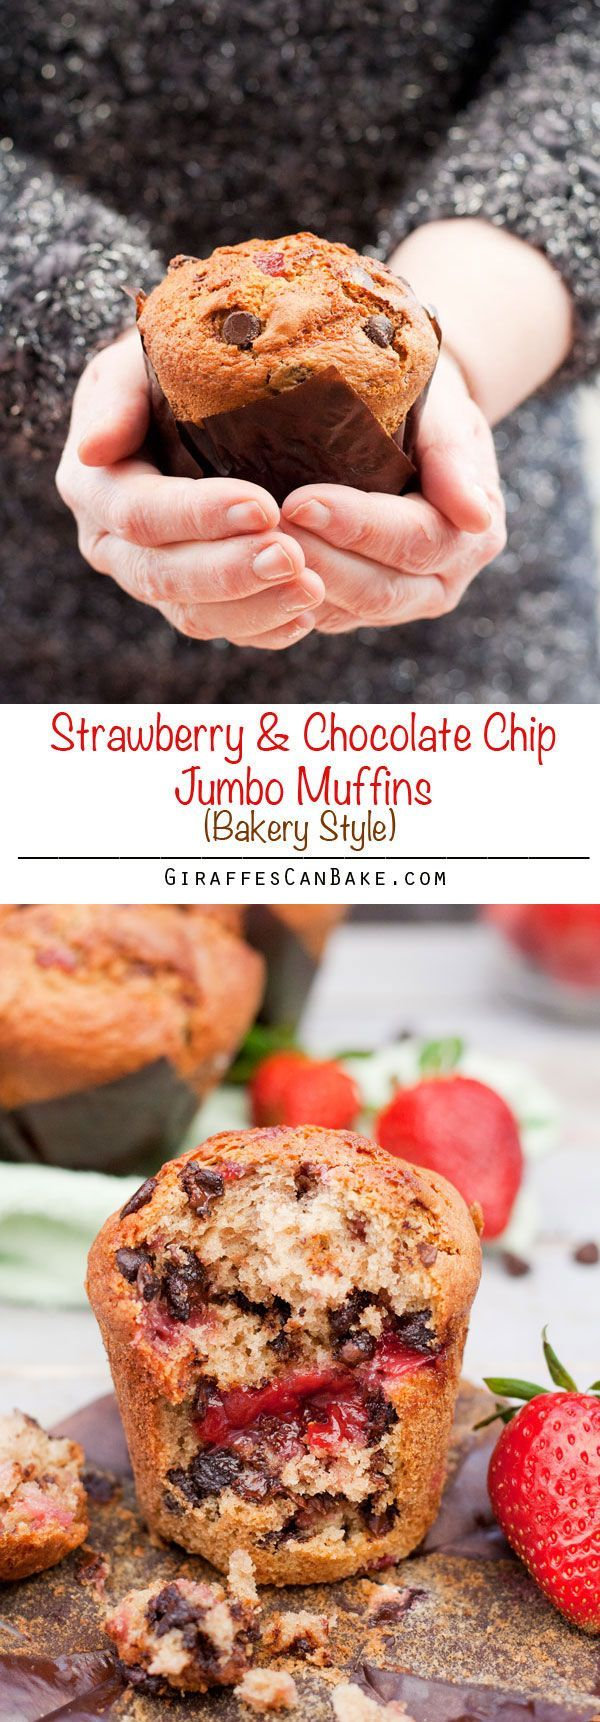 Strawberry Chocolate Chip Jumbo Muffins - Really moist bakery style muffins full of chocolate chips and a gooey strawberry sauce centre. These Strawberry Chocolate Chip Jumbo Muffins are super-sized, absolutely delicious and taste just like they came from